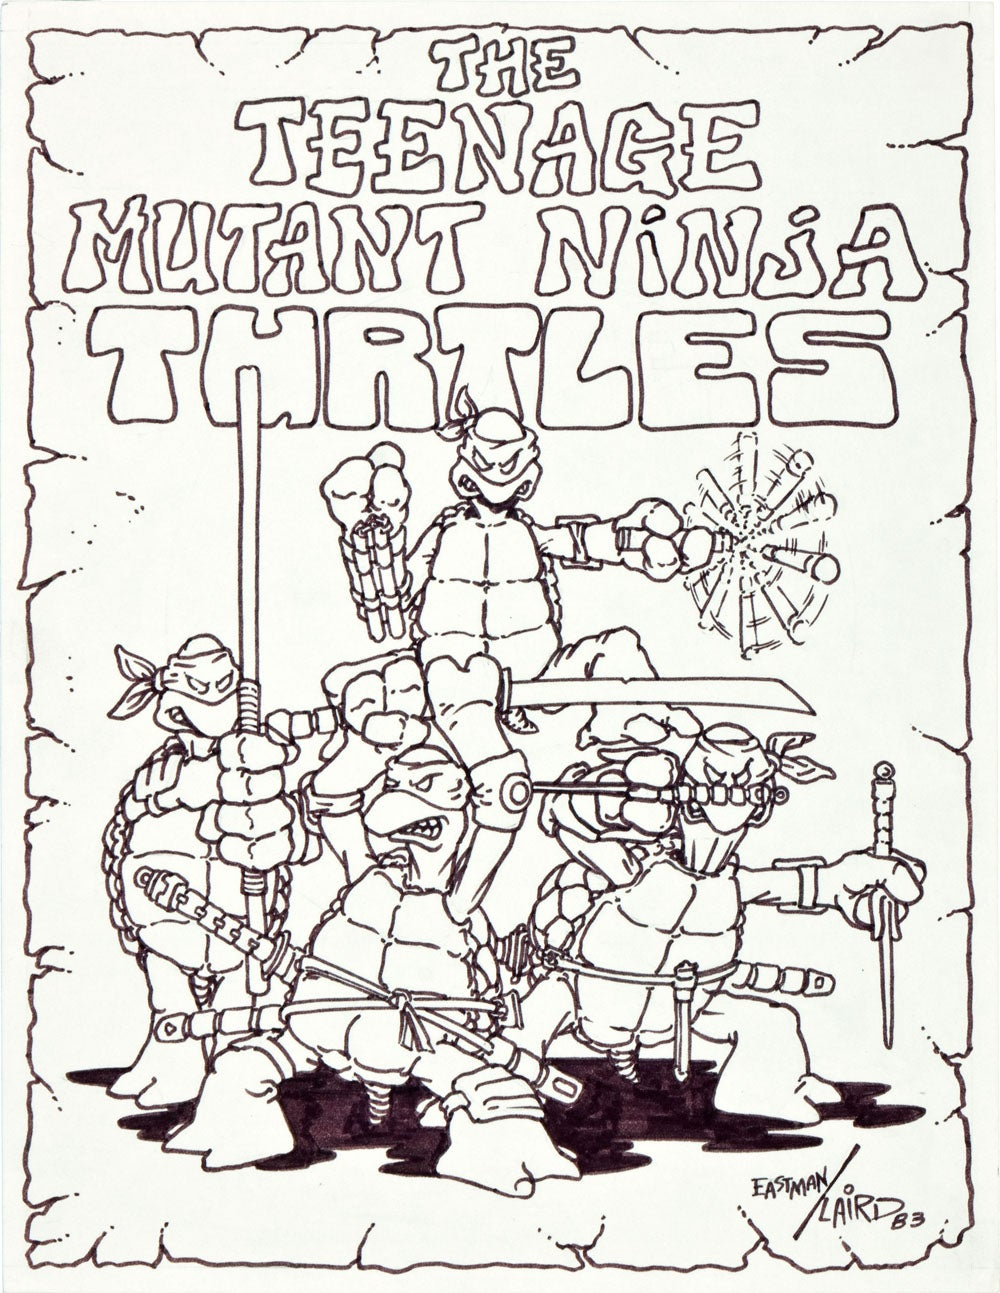 tmnt-first-drawing-original-art